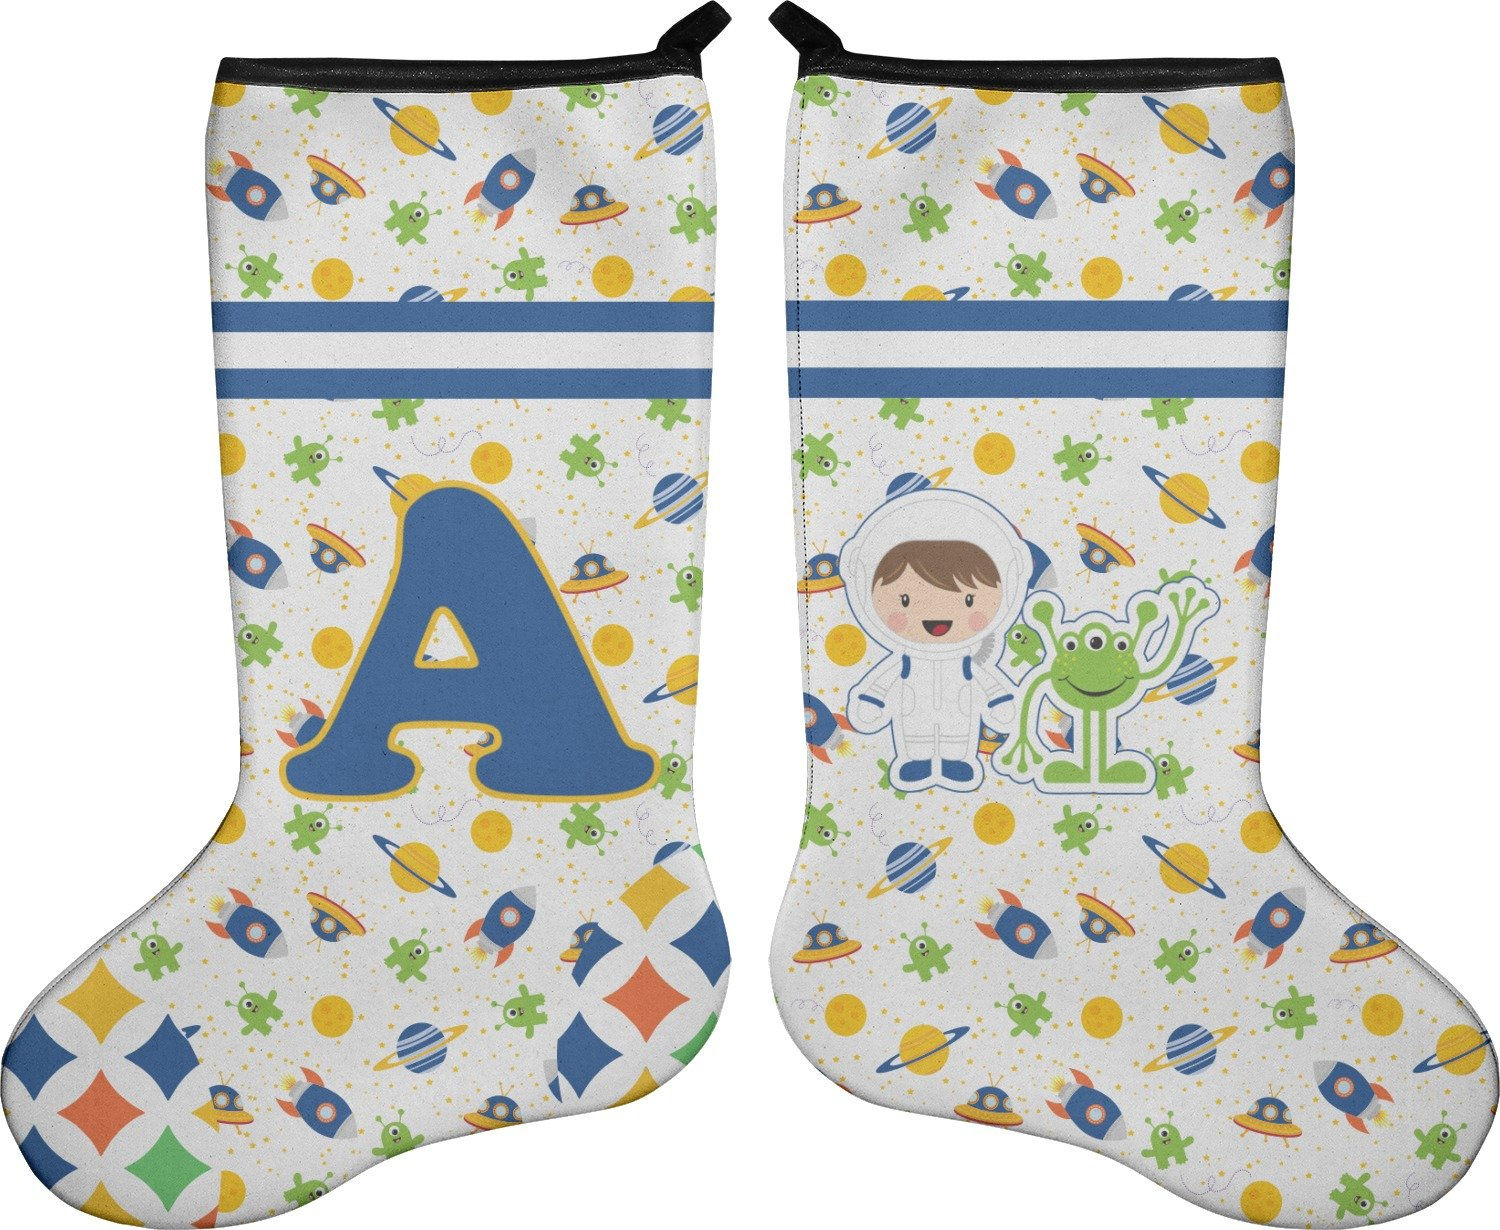 RNK Shops Boy's Space & Geometric Print Christmas Stocking - Double-Sided - Neoprene (Personalized)